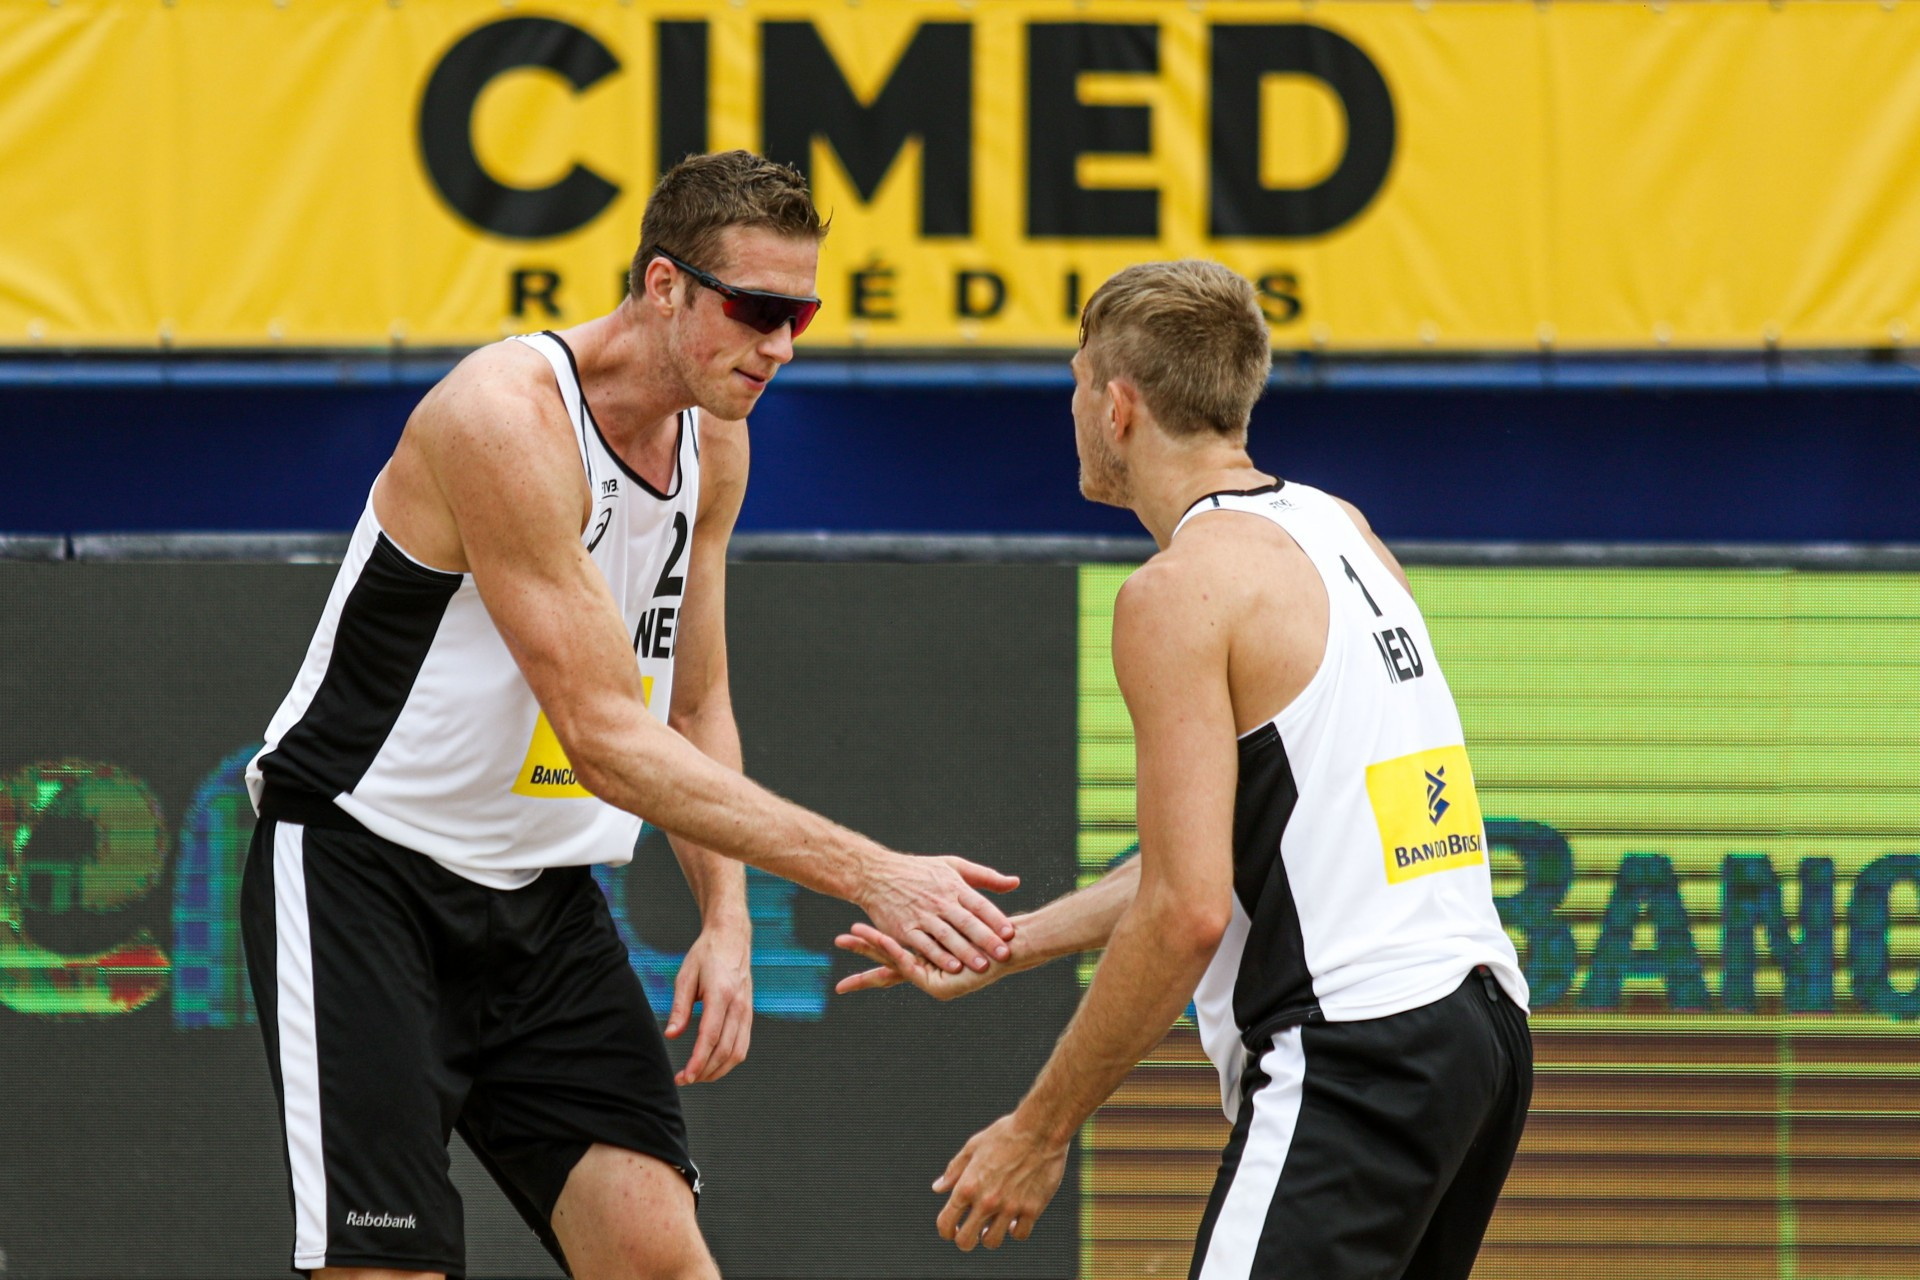 Varenhorst and van de Velde are fresh from a bronze medal at the World Tour event in Itapema (Photocredit: FIVB)